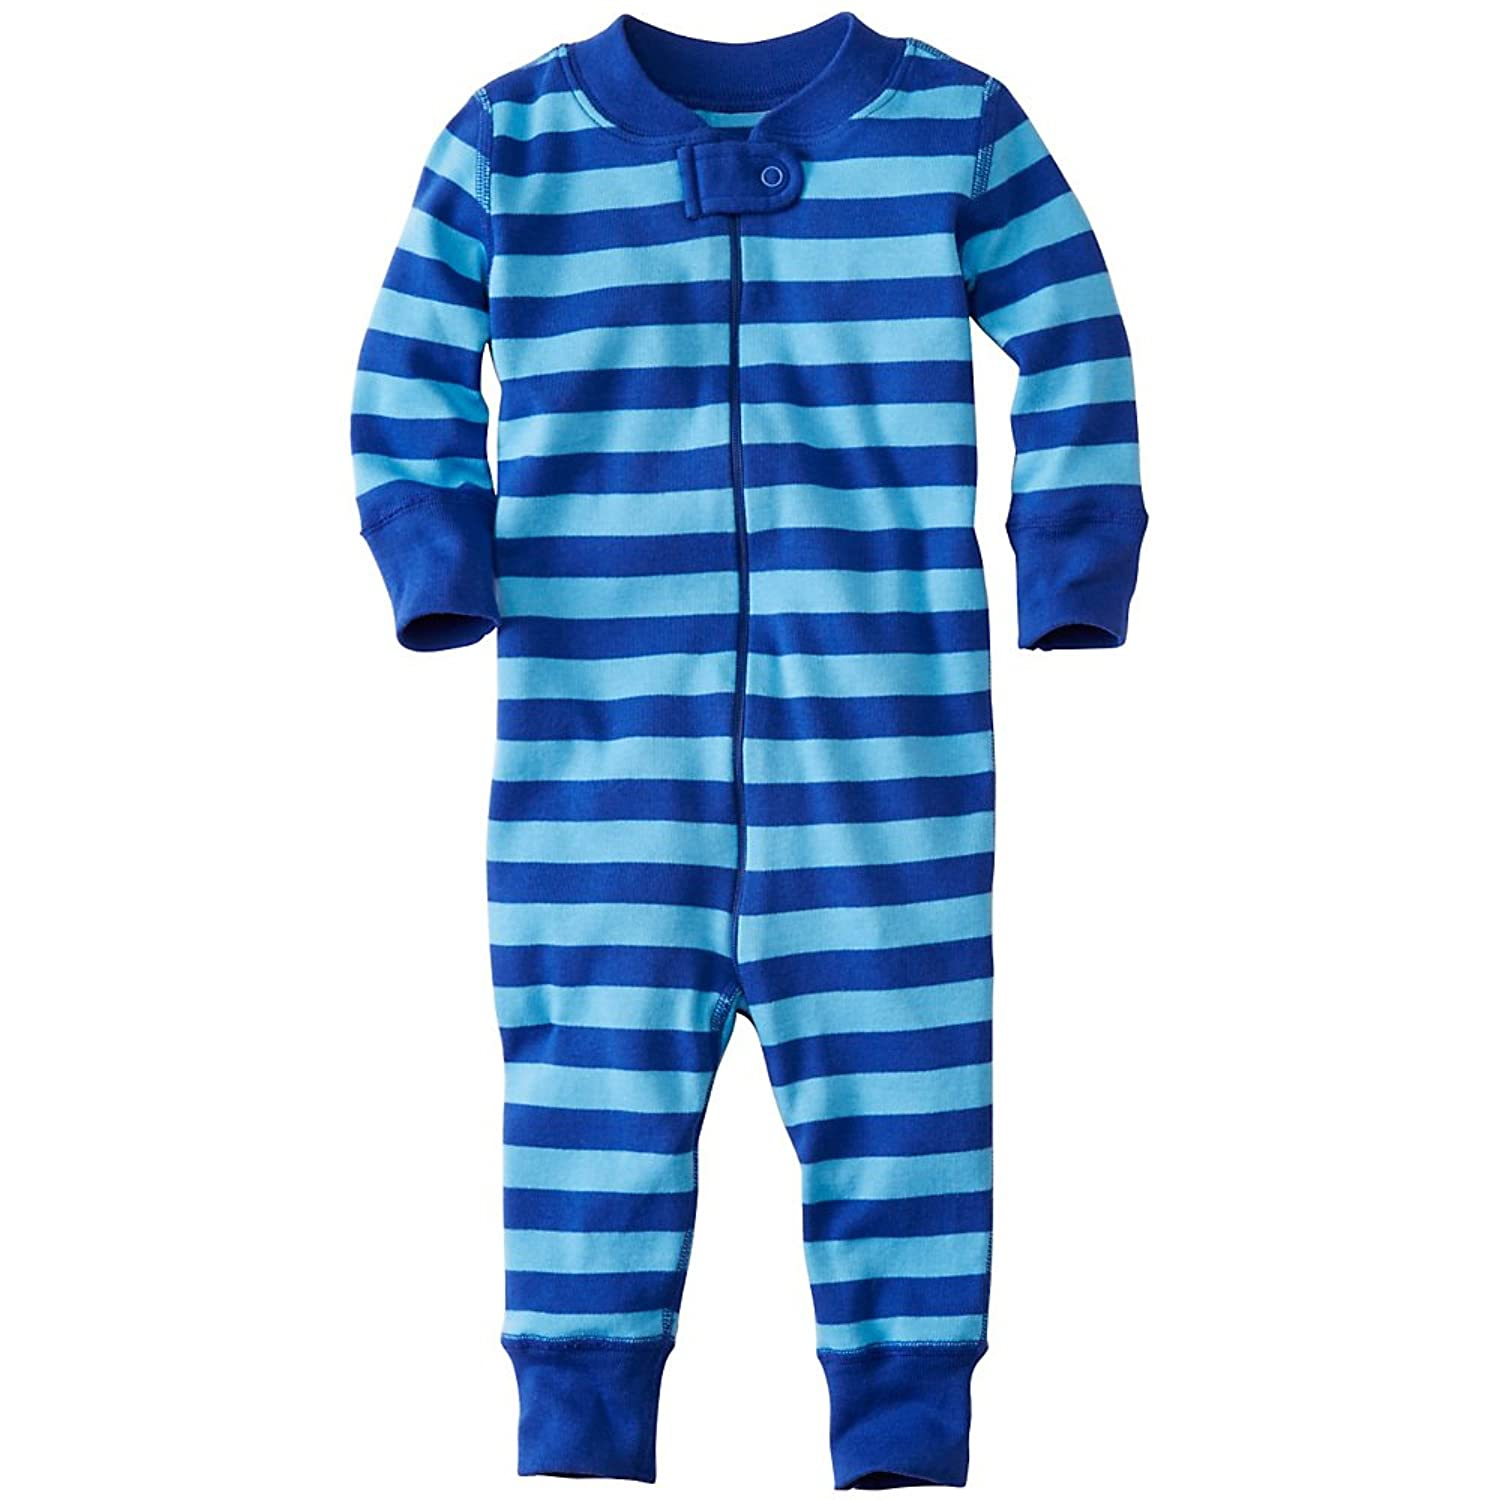 Hanna Andersson Baby Night Night Baby Sleepers In Pure Organic Cotton, Size 75 (9-18 Months), Blue Sea/Map Blue